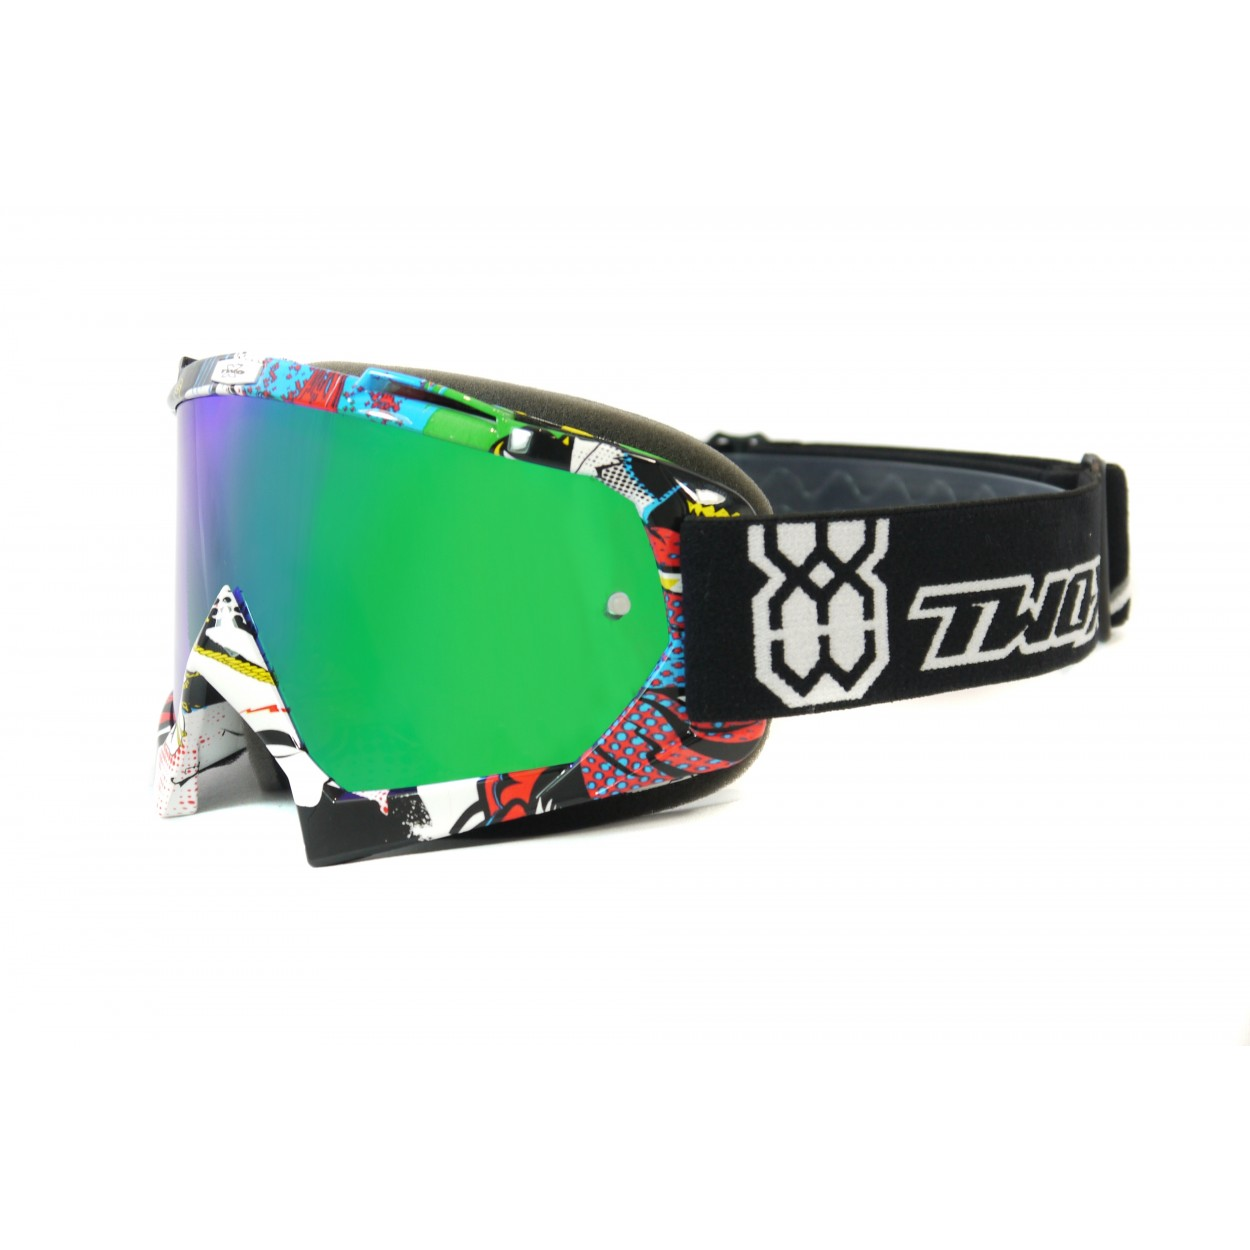 TWO-X Race Crossbrille MX Brille Enduro Motocross grün verspiegelt Graphic